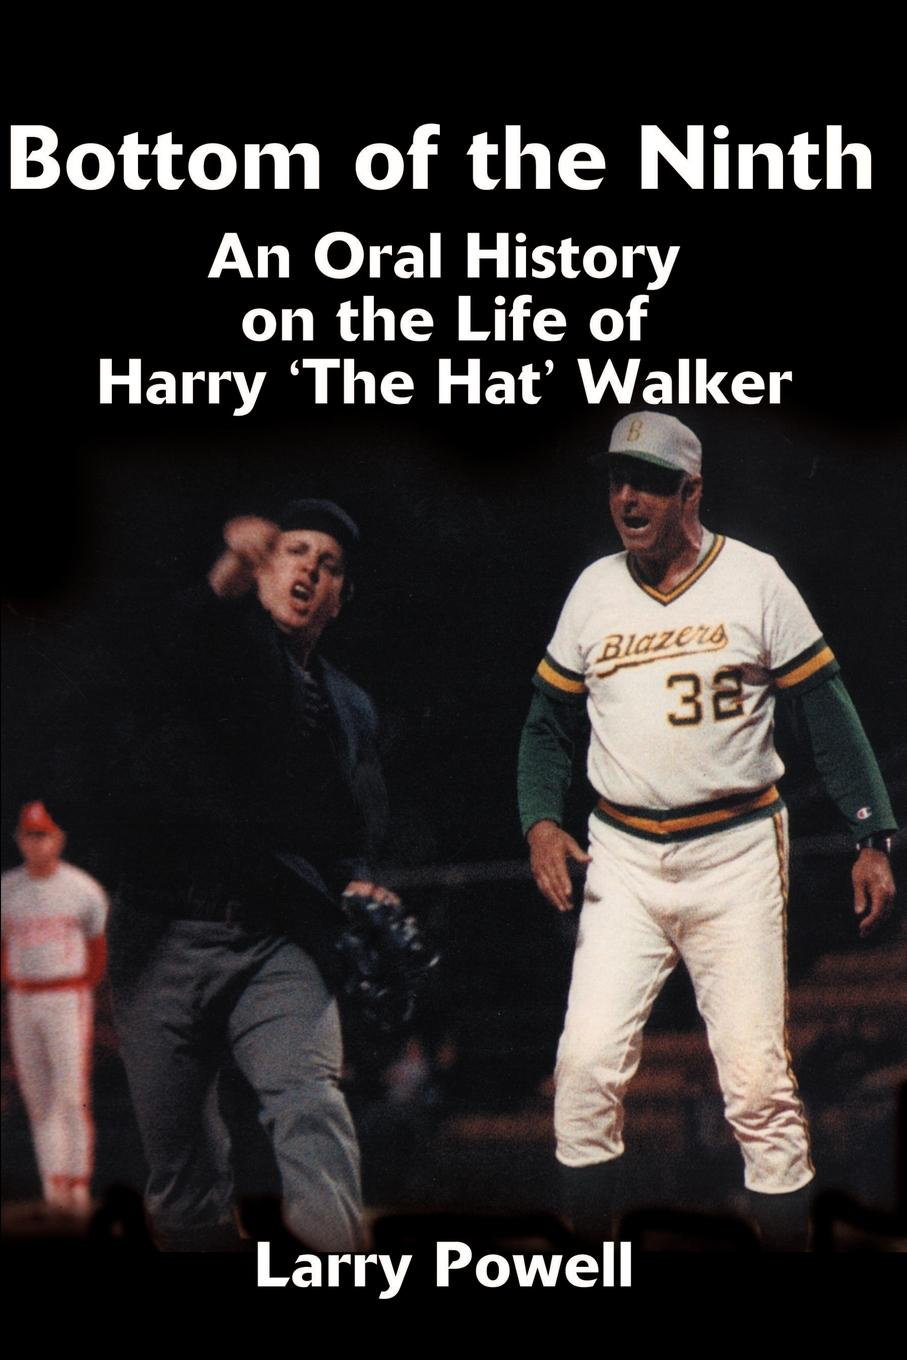 цены Larry Powell Bottom of the Ninth. An Oral History on the Life of Harry